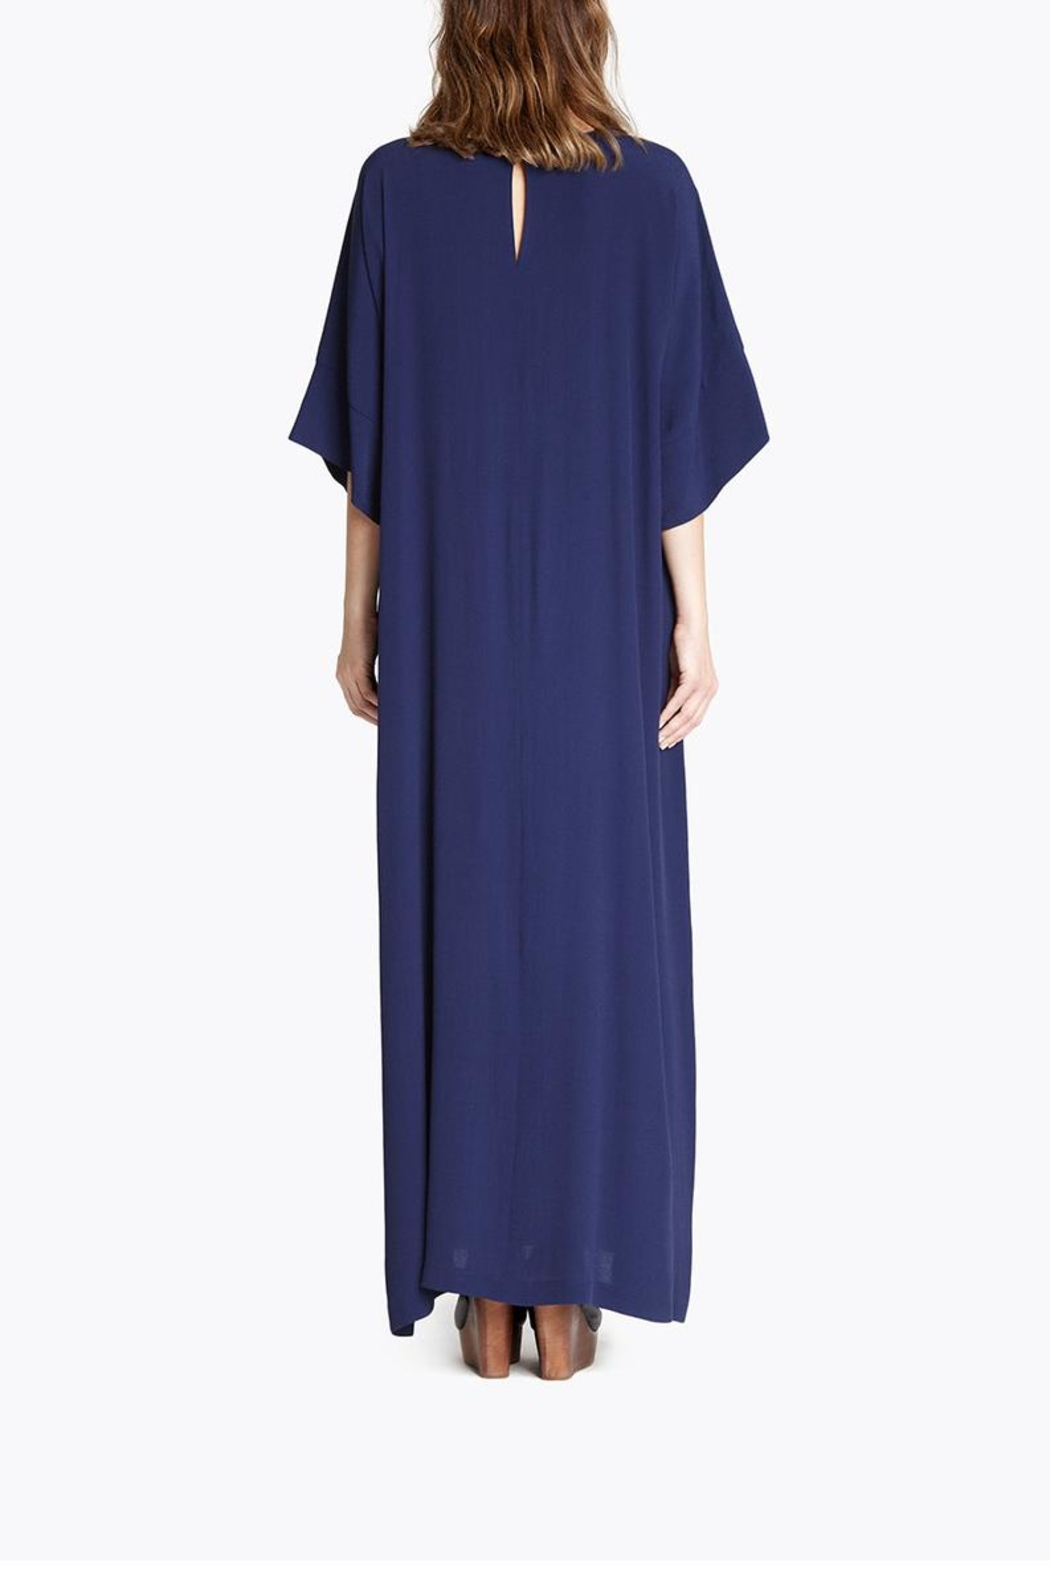 CYRILLE GASSILINE Blue Maxi Dress - Back Cropped Image